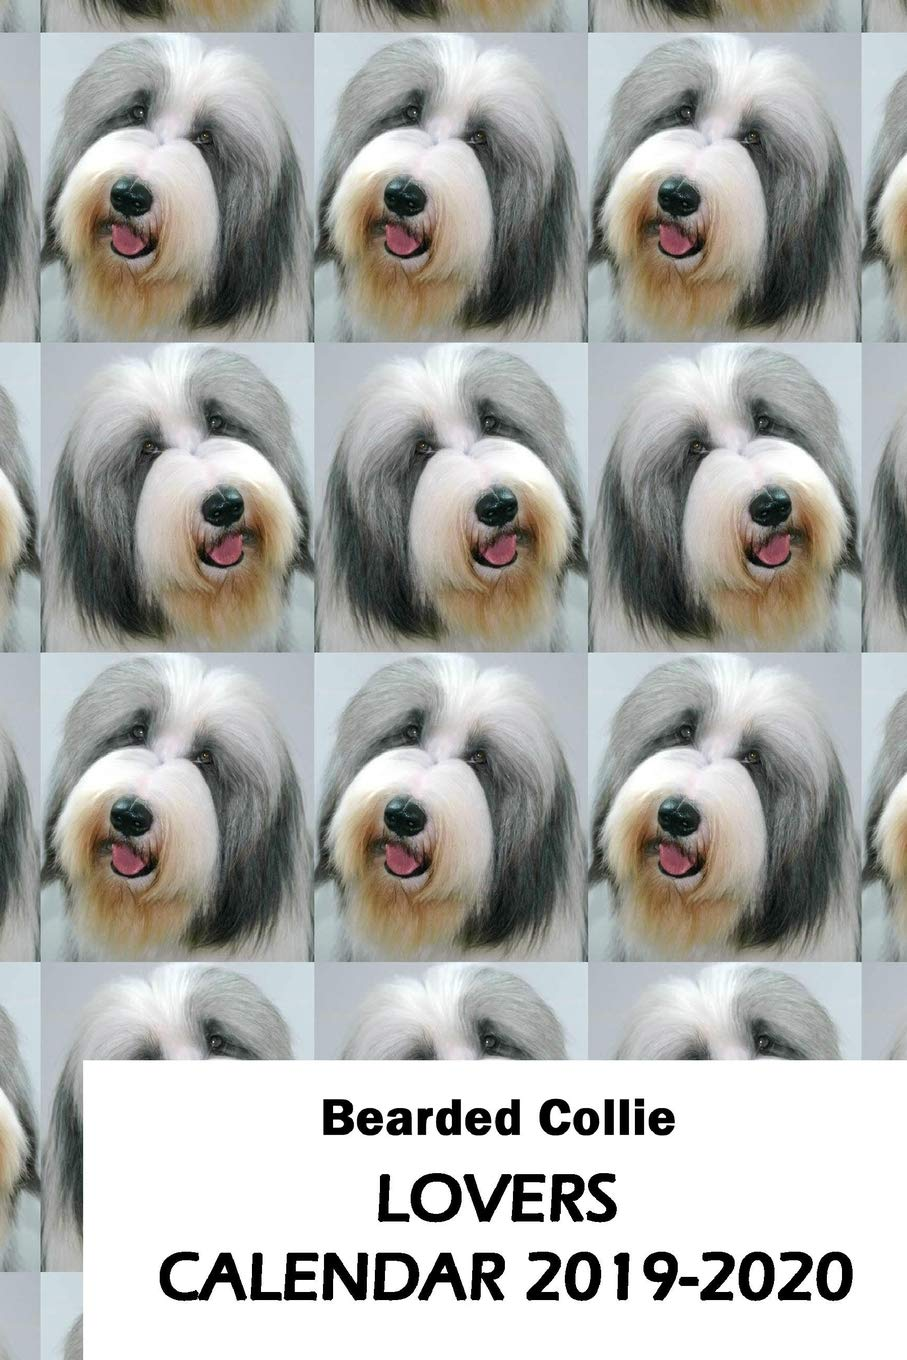 Bearded Collie Lovers Calendar 2019-2020